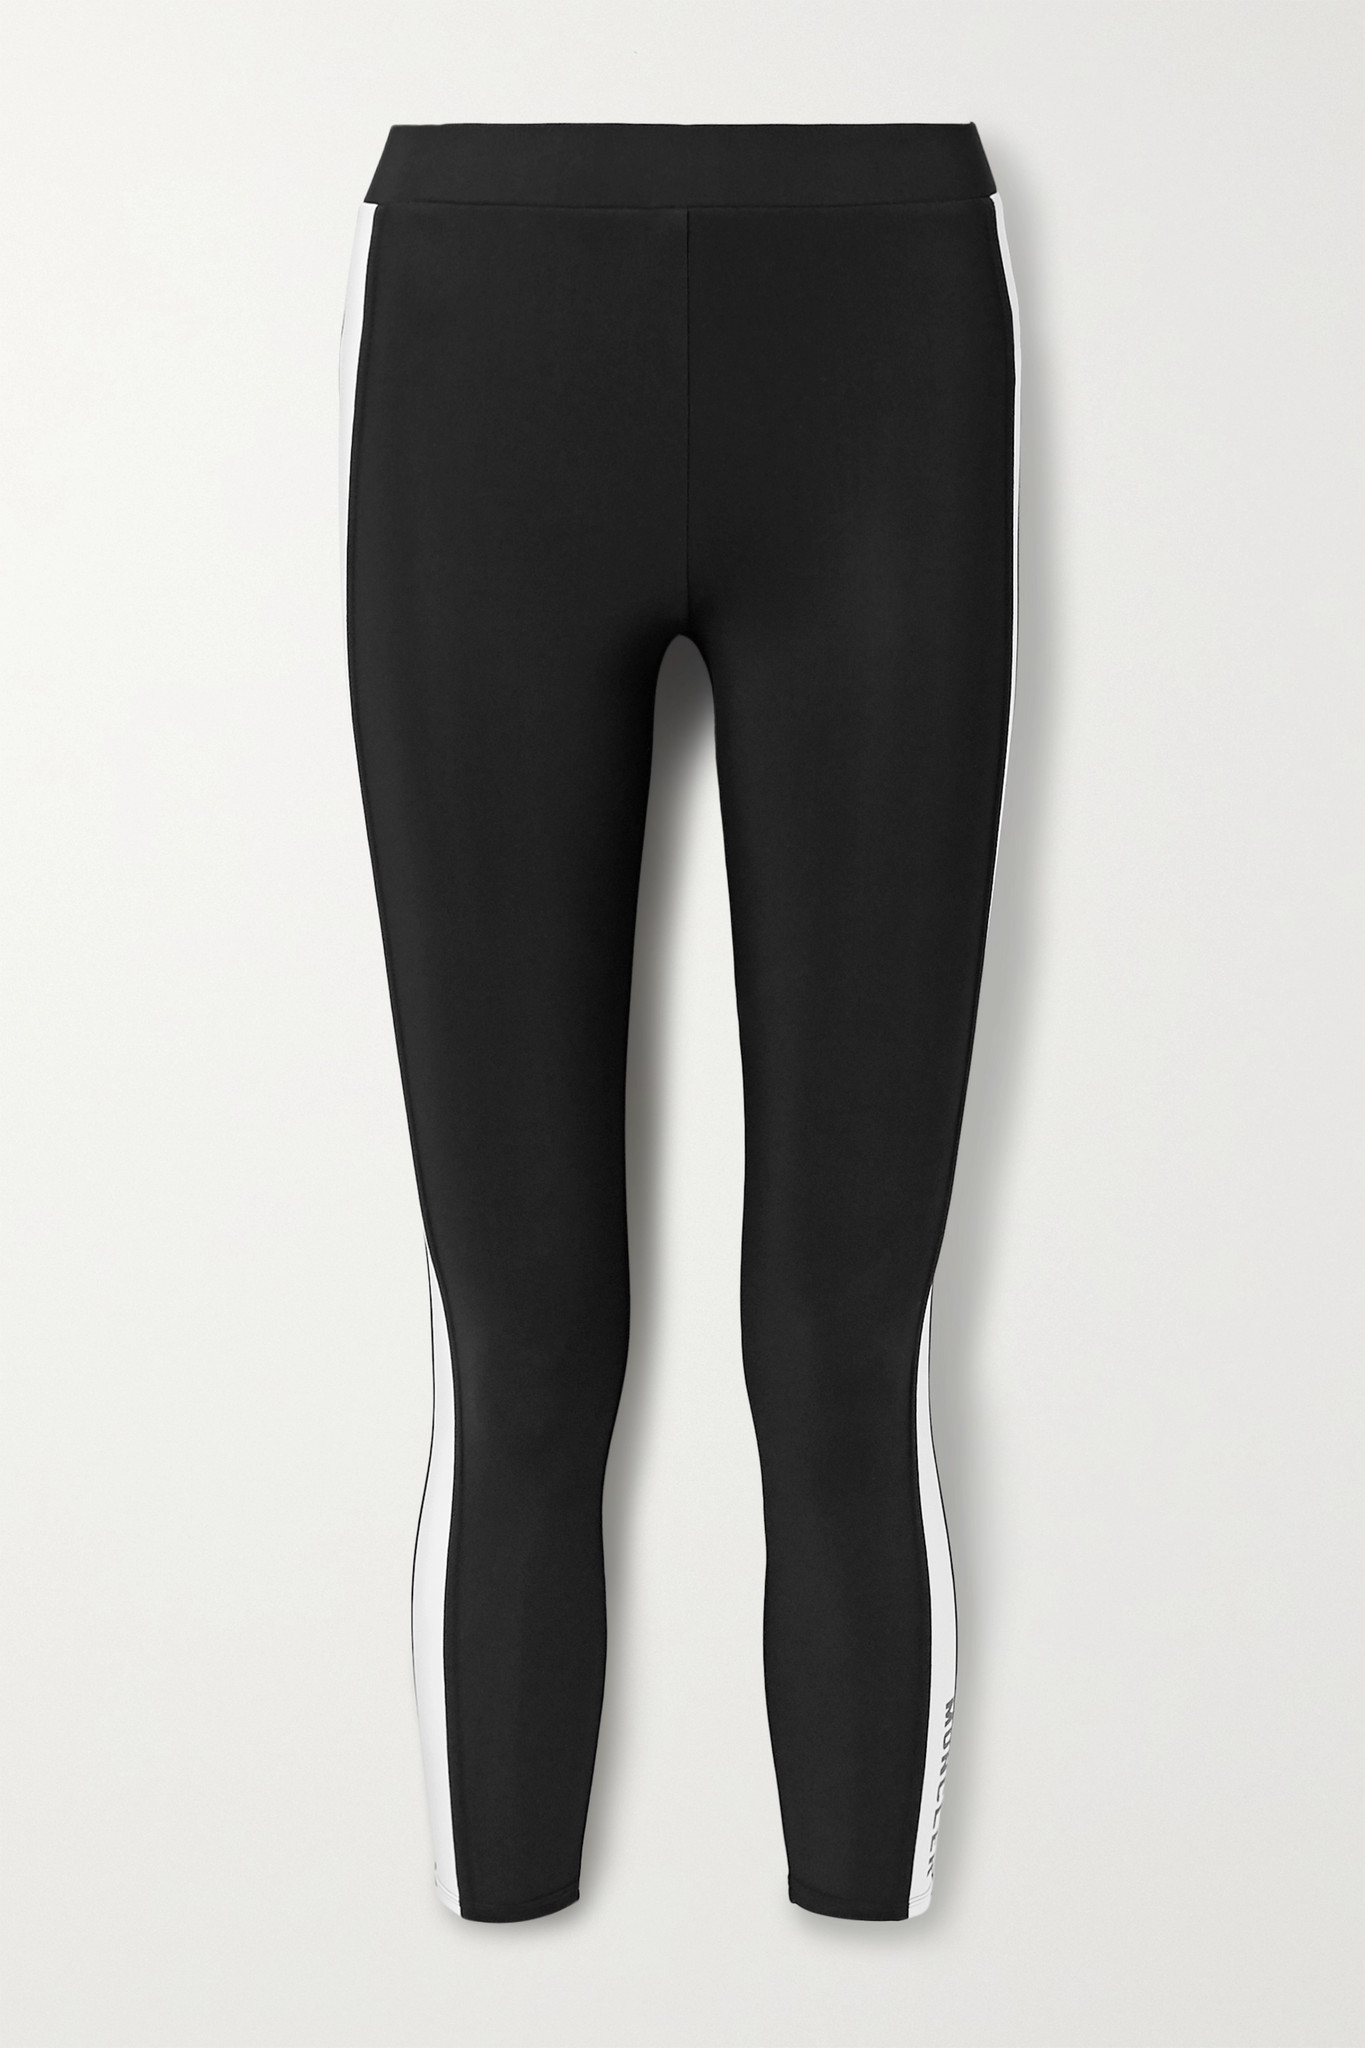 MONCLER - Cropped Two-tone Stretch Leggings - Black - small